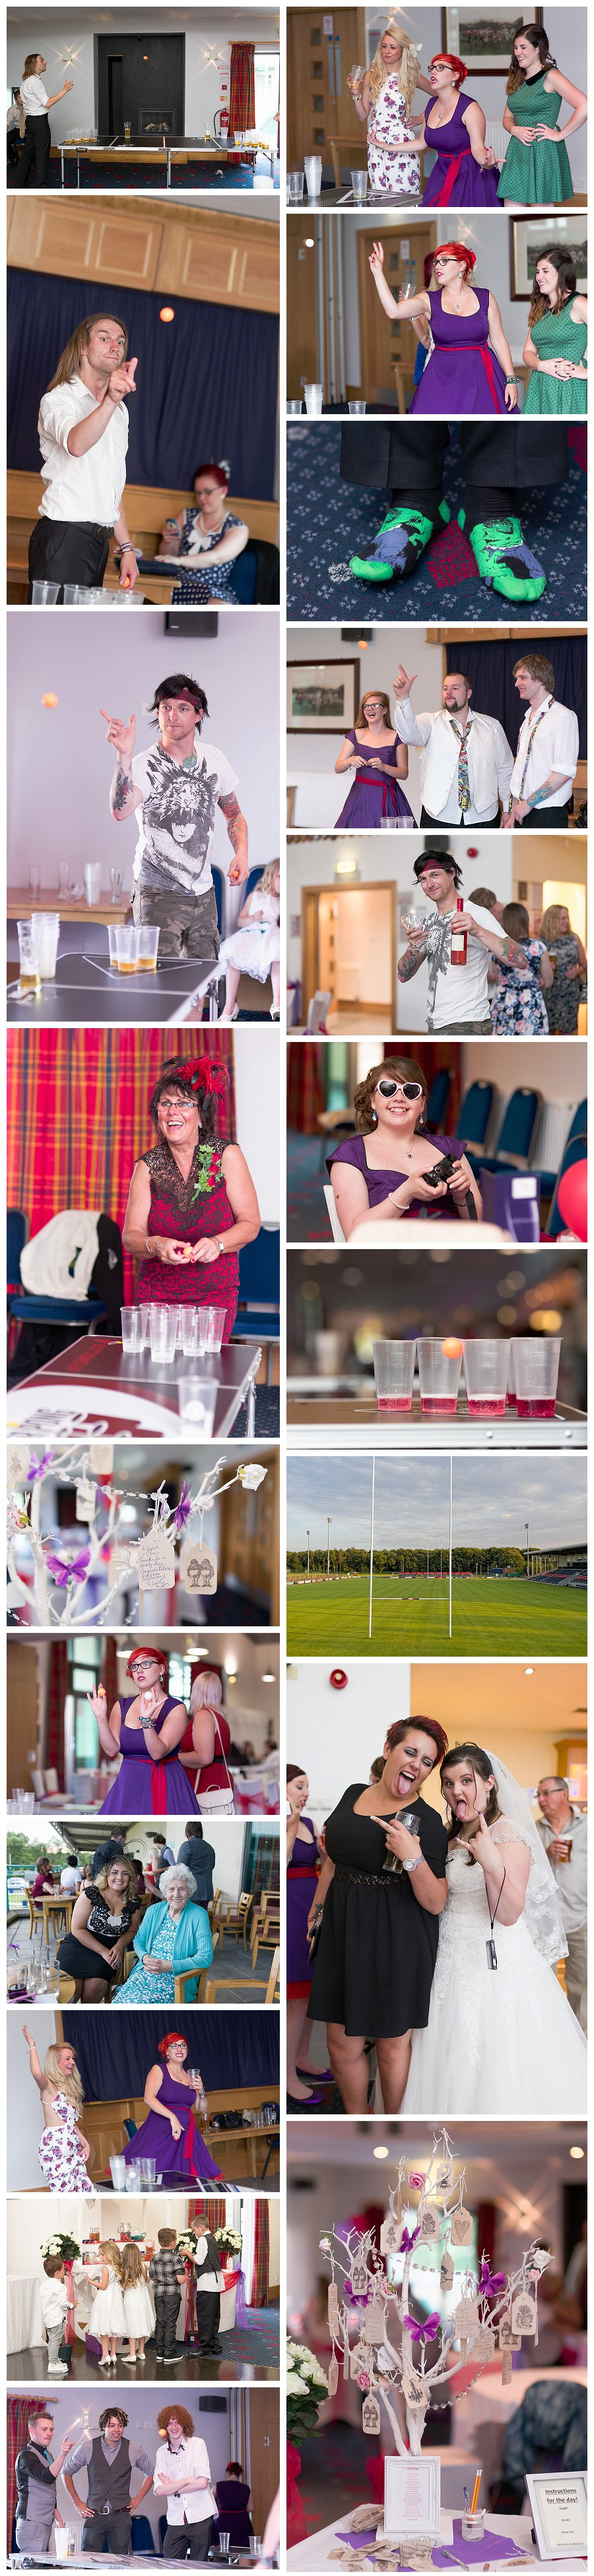 event photographers Doncaster castle park, yorkshire photographers, beer pong at a wedding